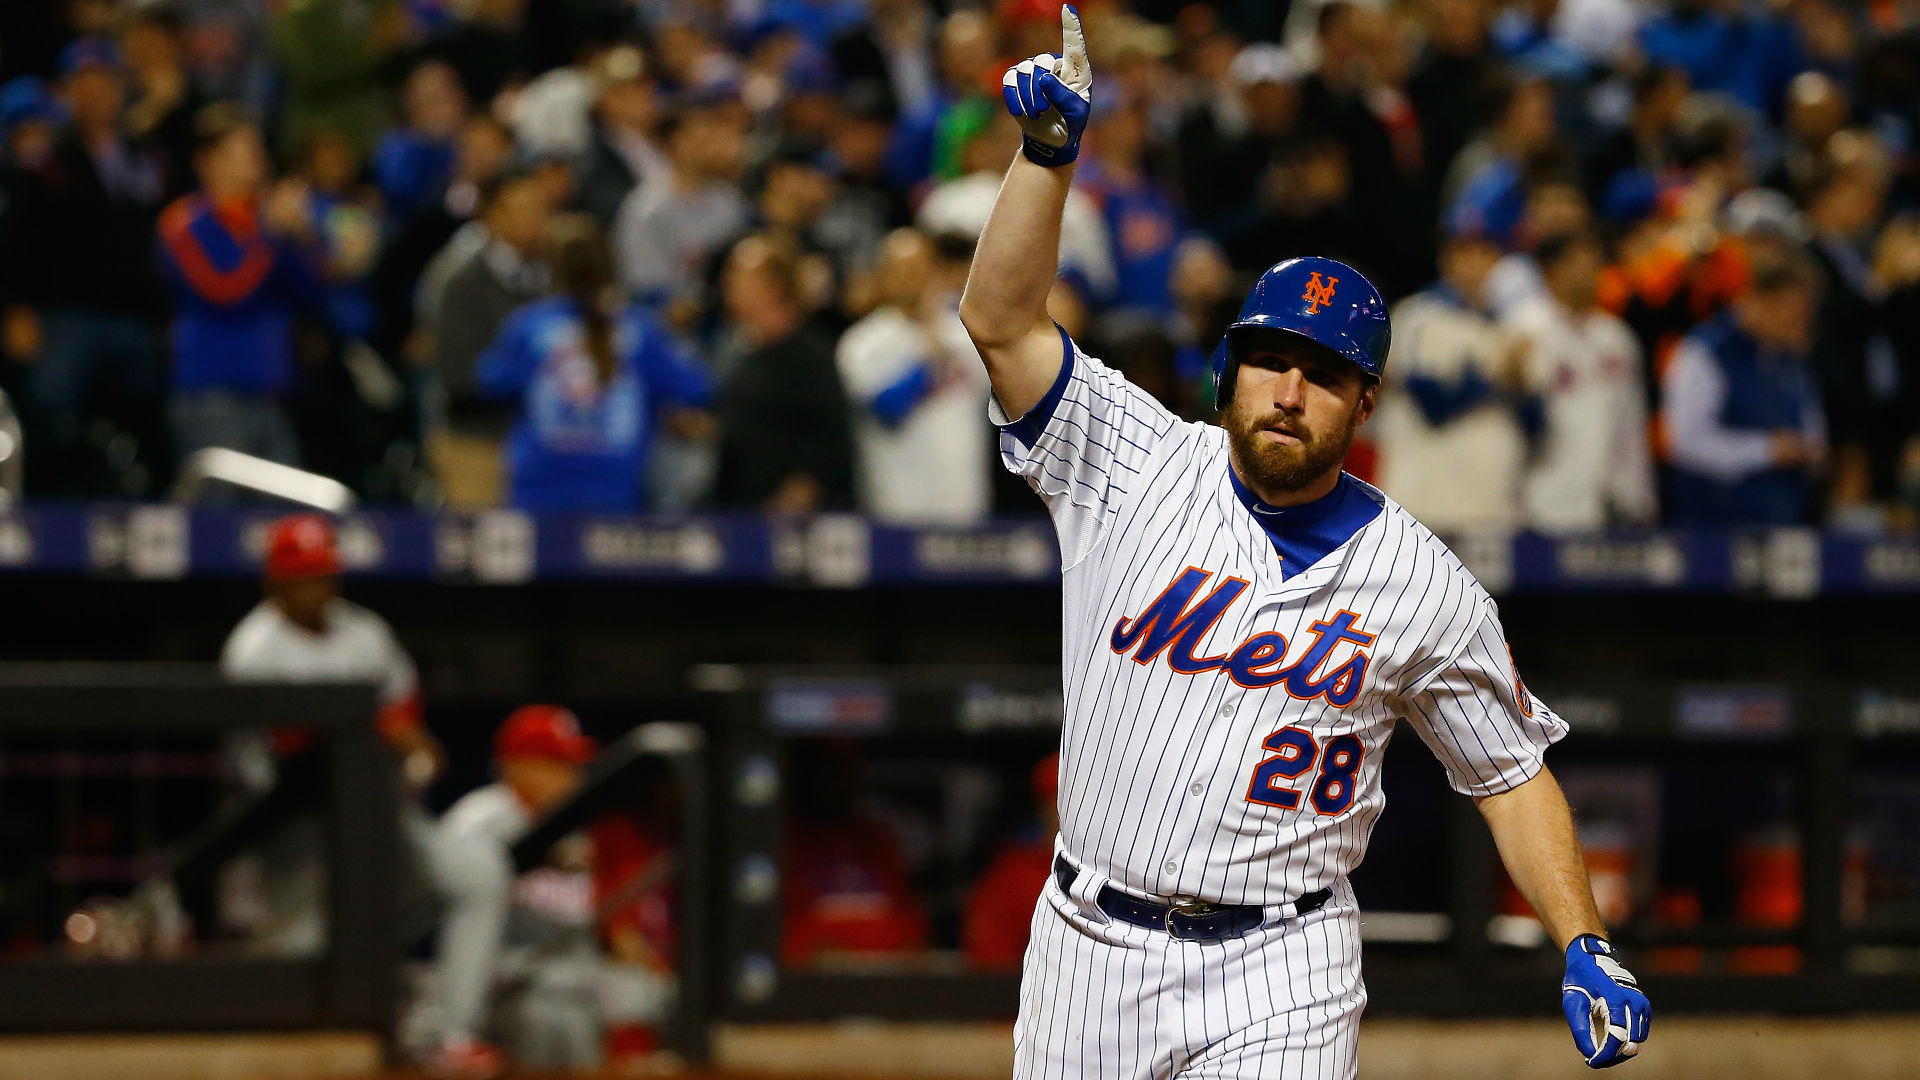 World Series odds - Hot start propels Mets